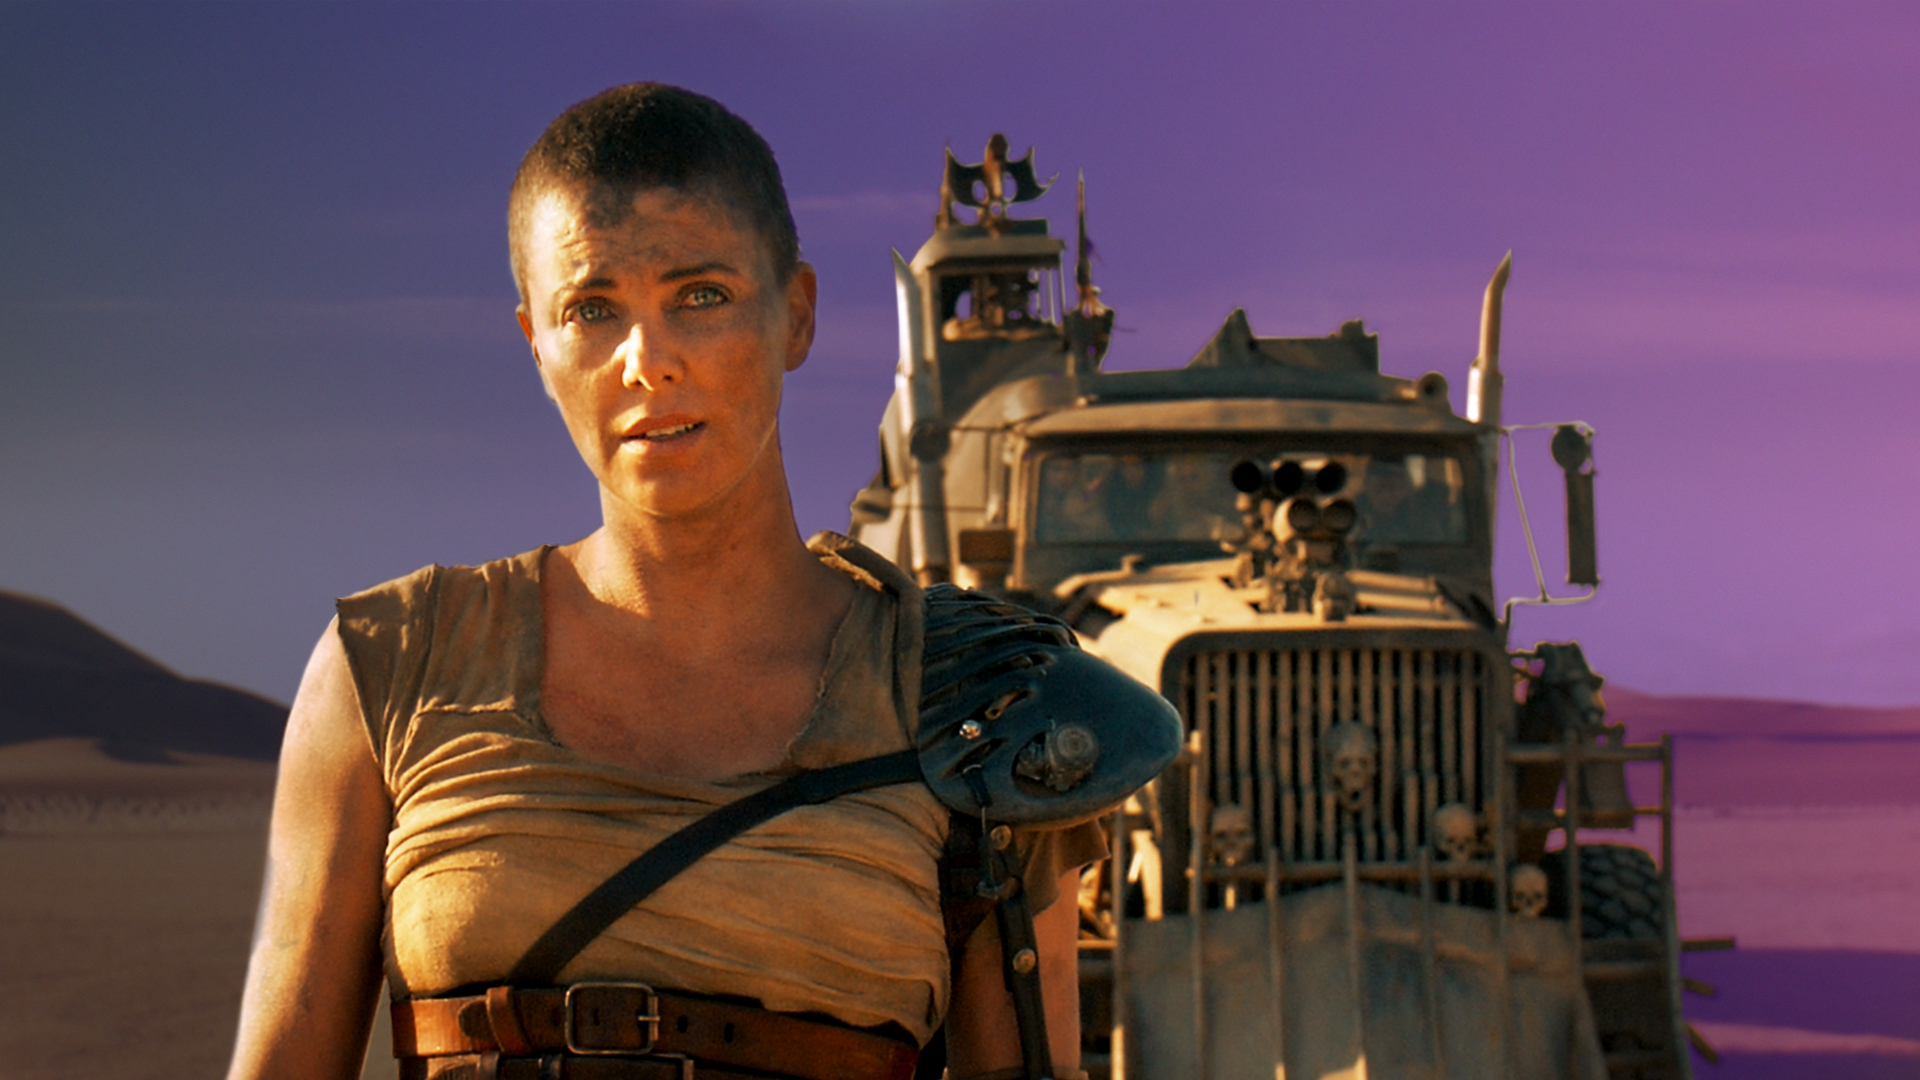 Charlize Theron stands in front of a post-apocalyptic truck in the movie Mad Max: Fury Road